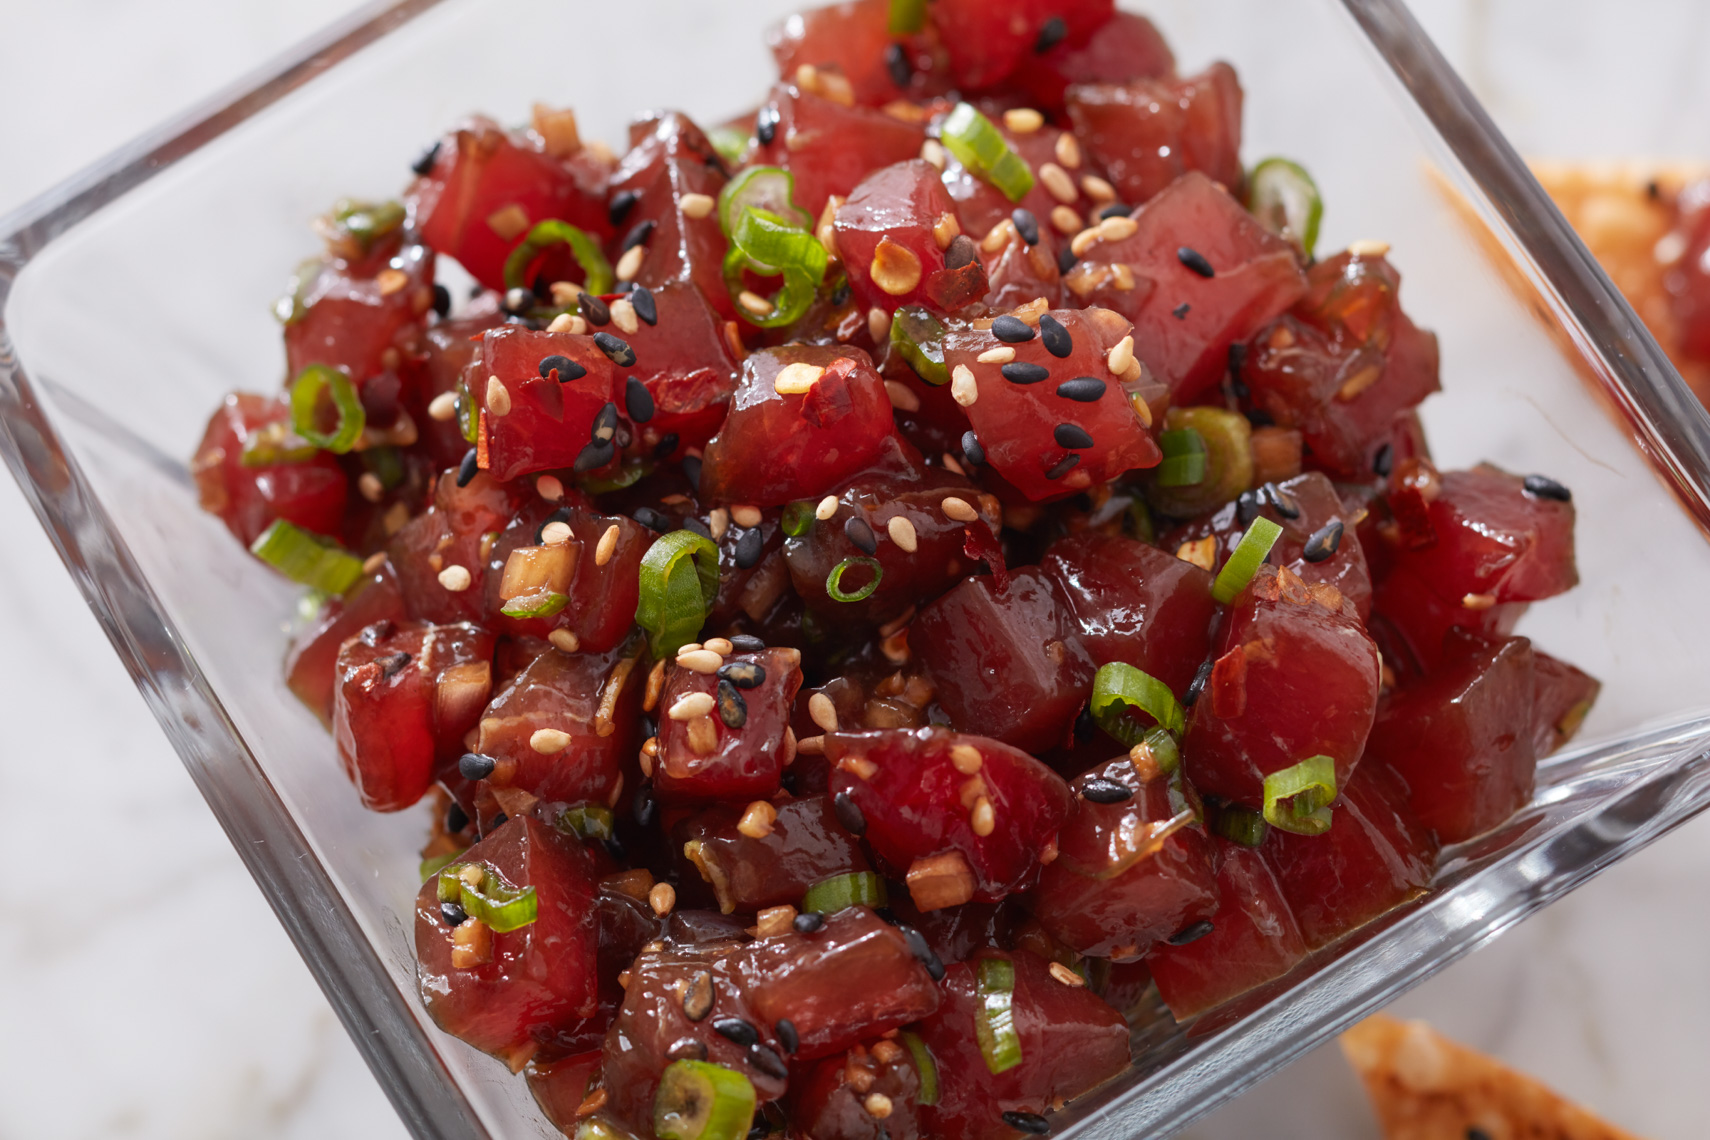 tuna poke with shallots and sesame seeds in glass bowl